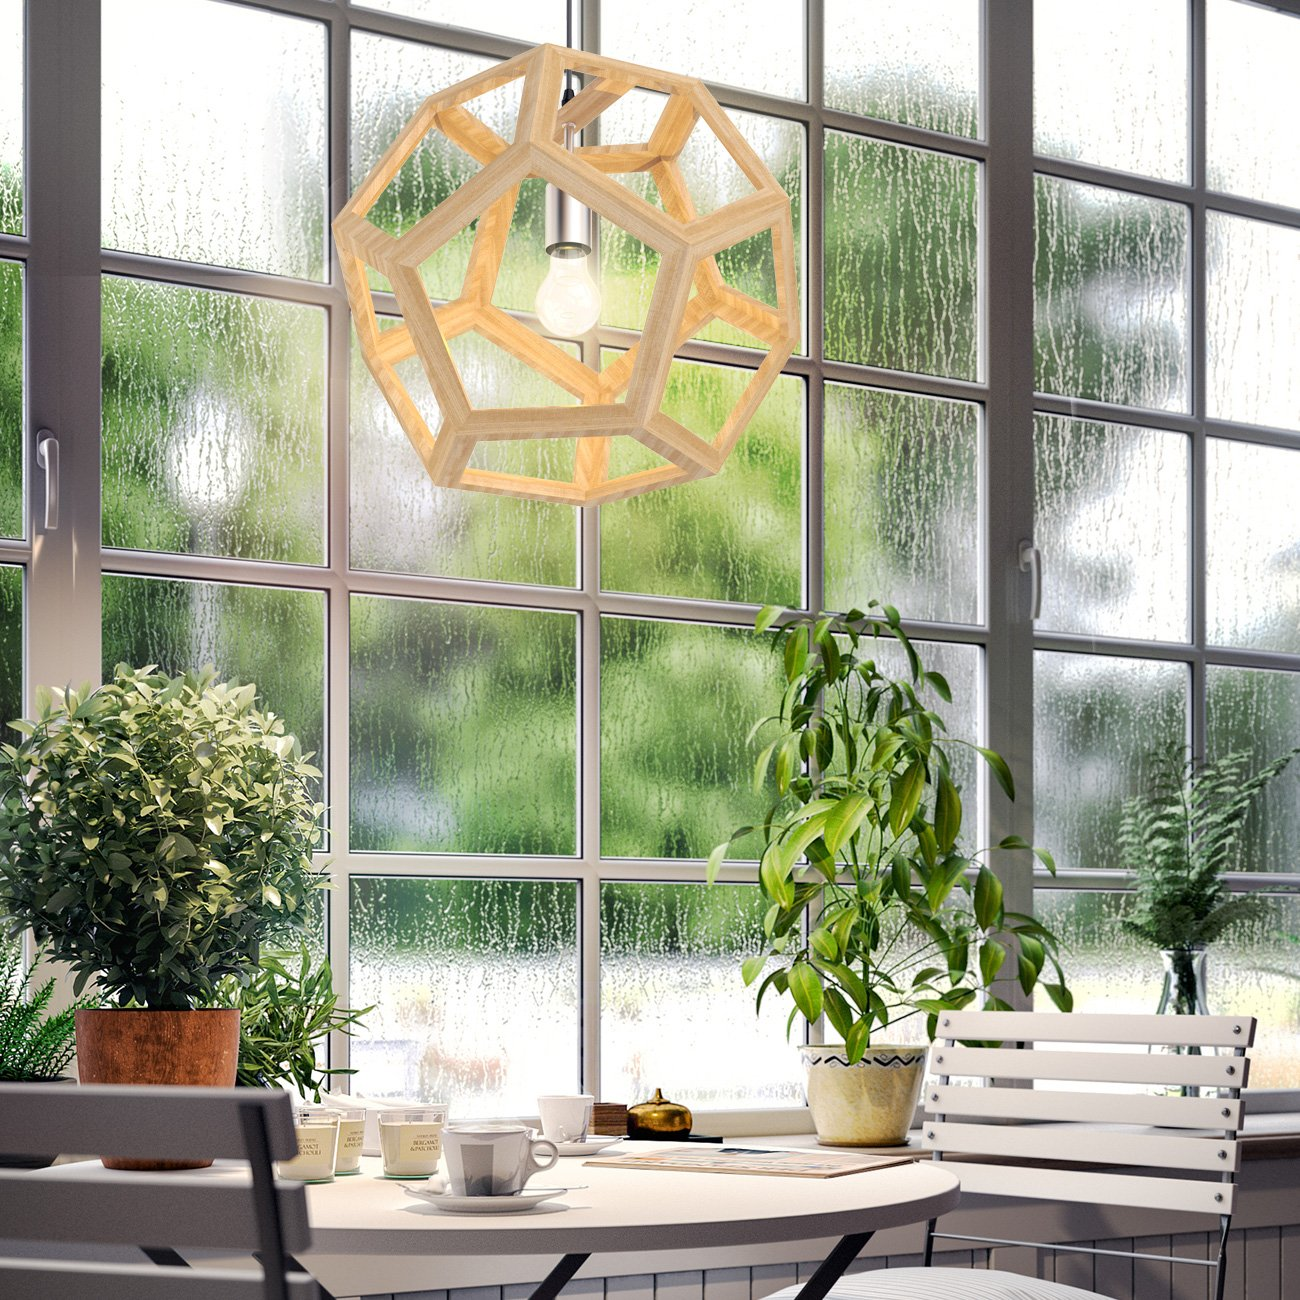 Tomons Hollow Design Wood Ceiling Pendant Lamp, Geometry Shape, E26/E27 Bulb Base, 60 Watts Incandescent Bulb, 12 Watts LED Bulb For Dining Room, Living Room, Bedroom, Study Room - PL1002 by tomons (Image #6)